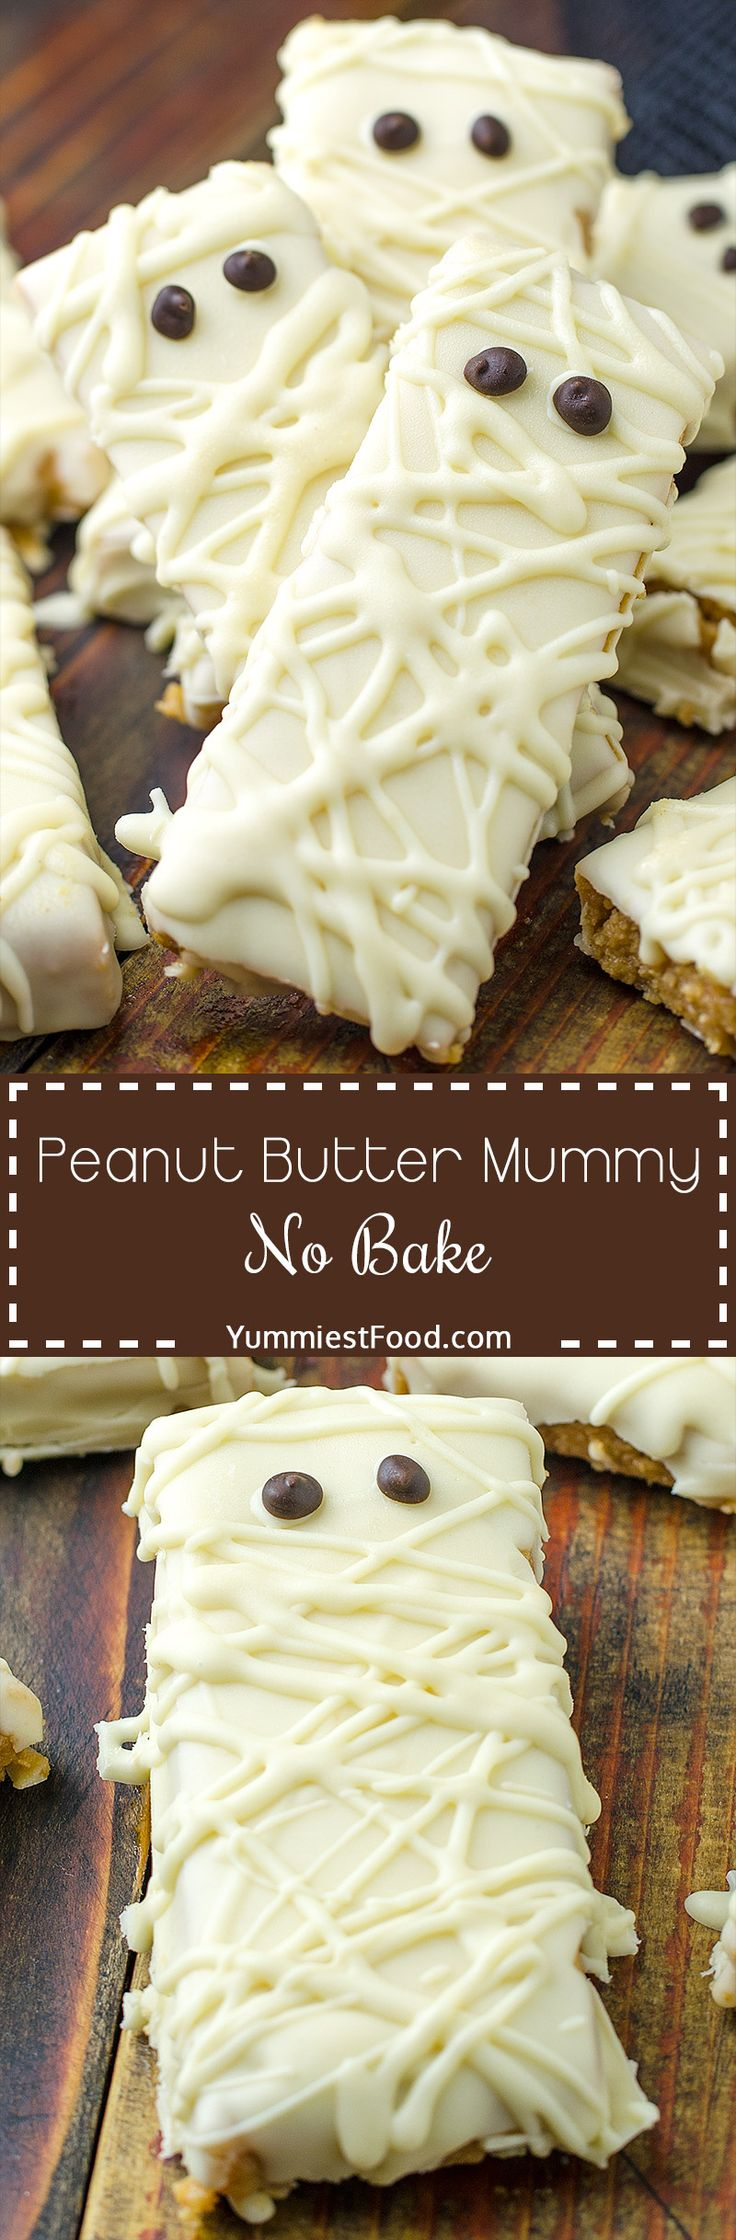 Super fun and easy to make no bake - Peanut Butter Mummy! They are freaking delicious and kids love it. Perfect Halloween treat!